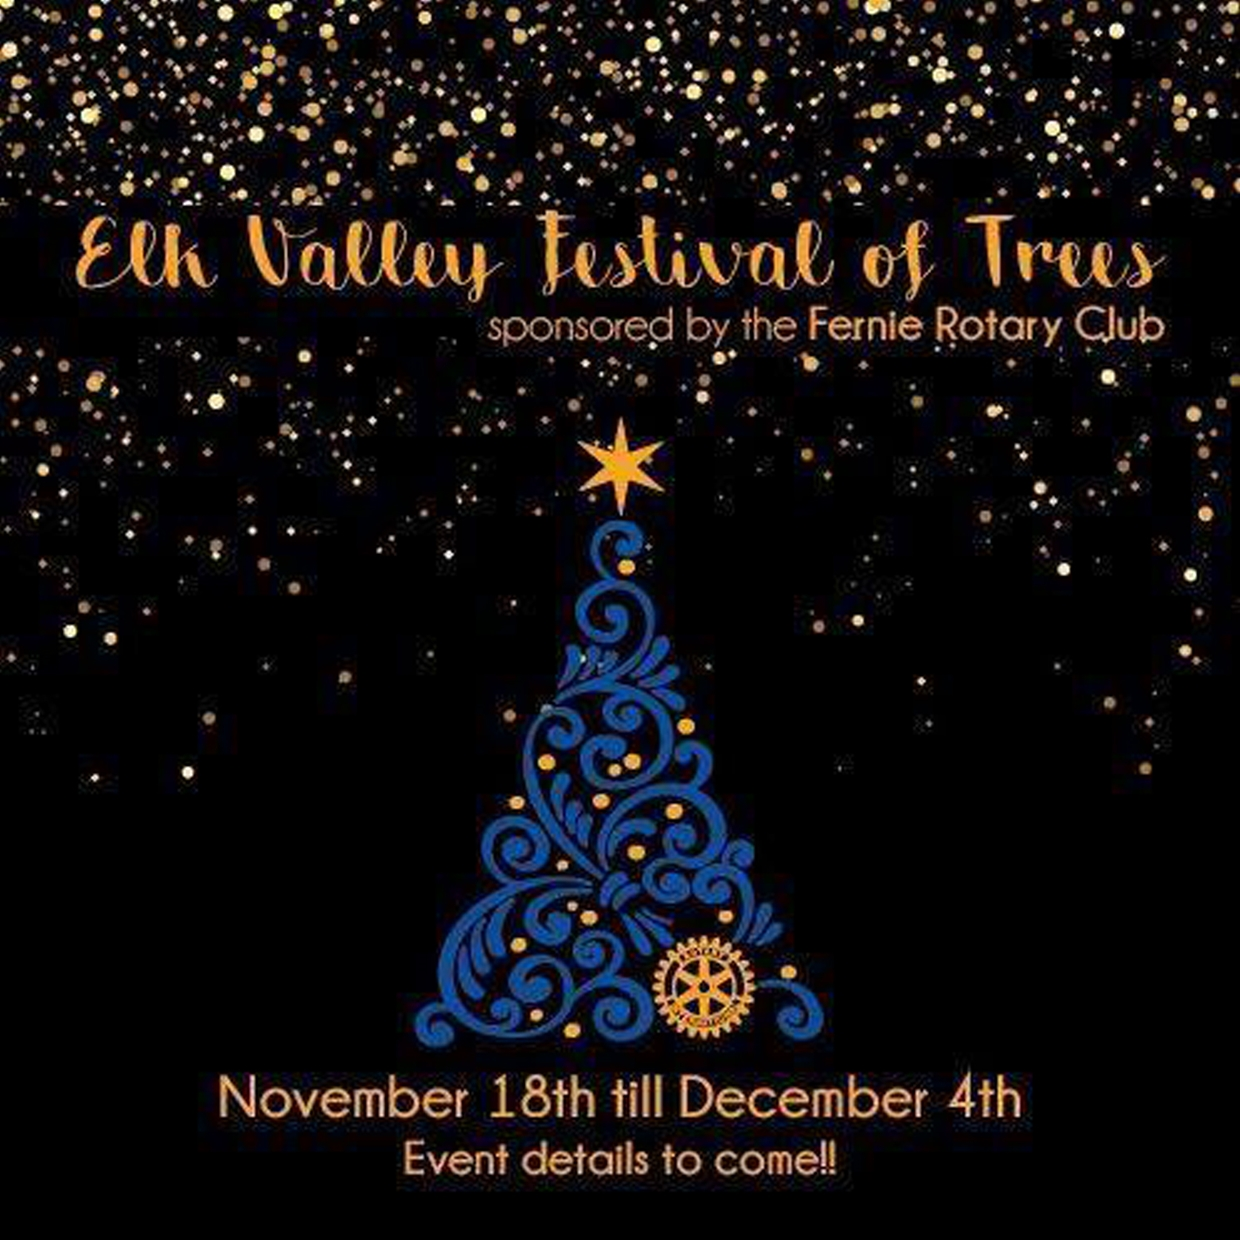 Elk Valley Festival of Trees